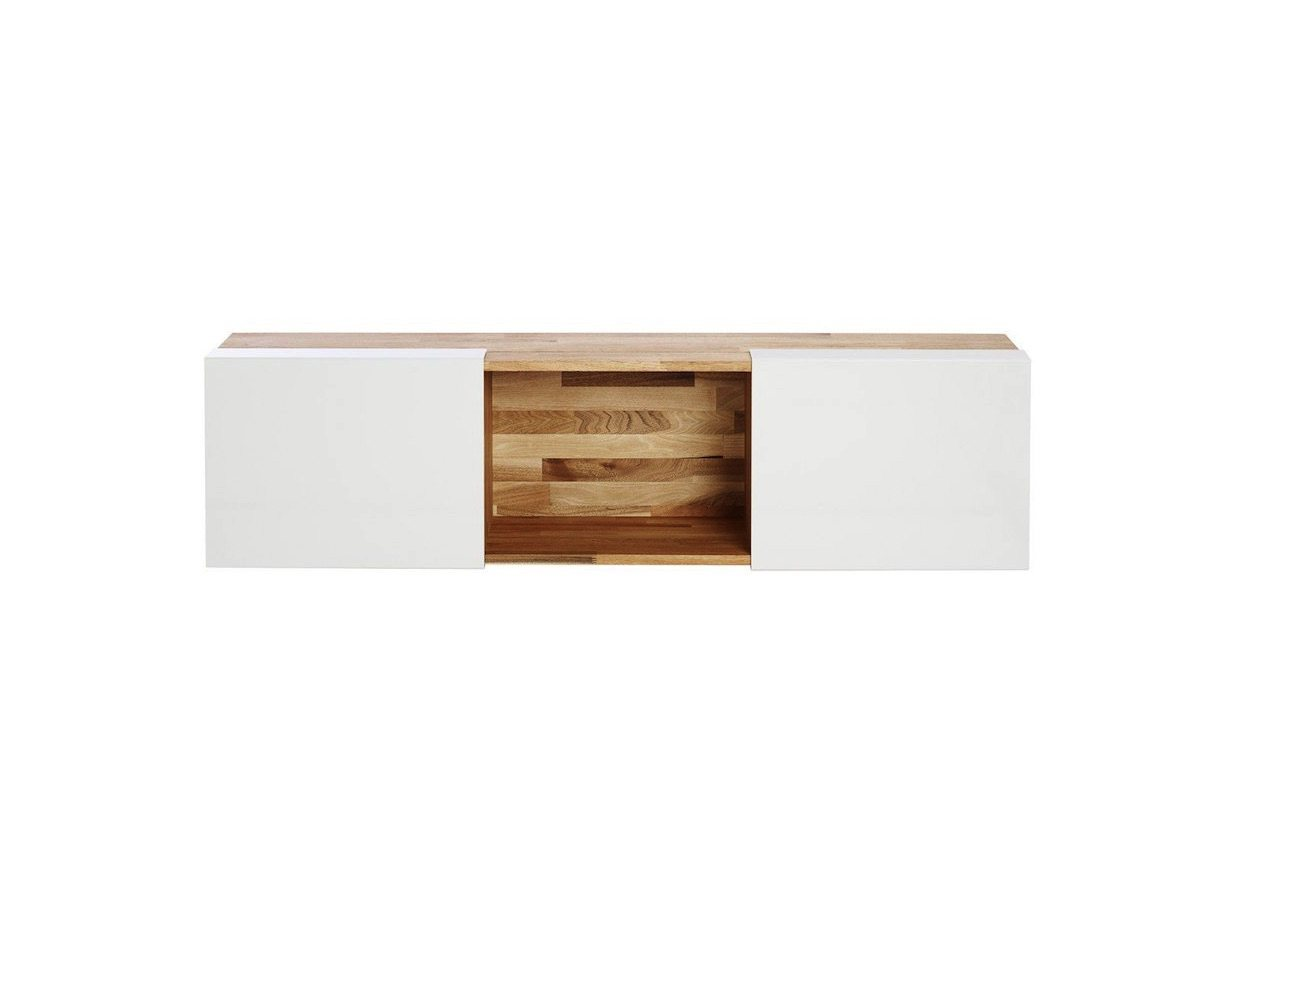 LAX Series Floating Wall Shelf by MASH Studios